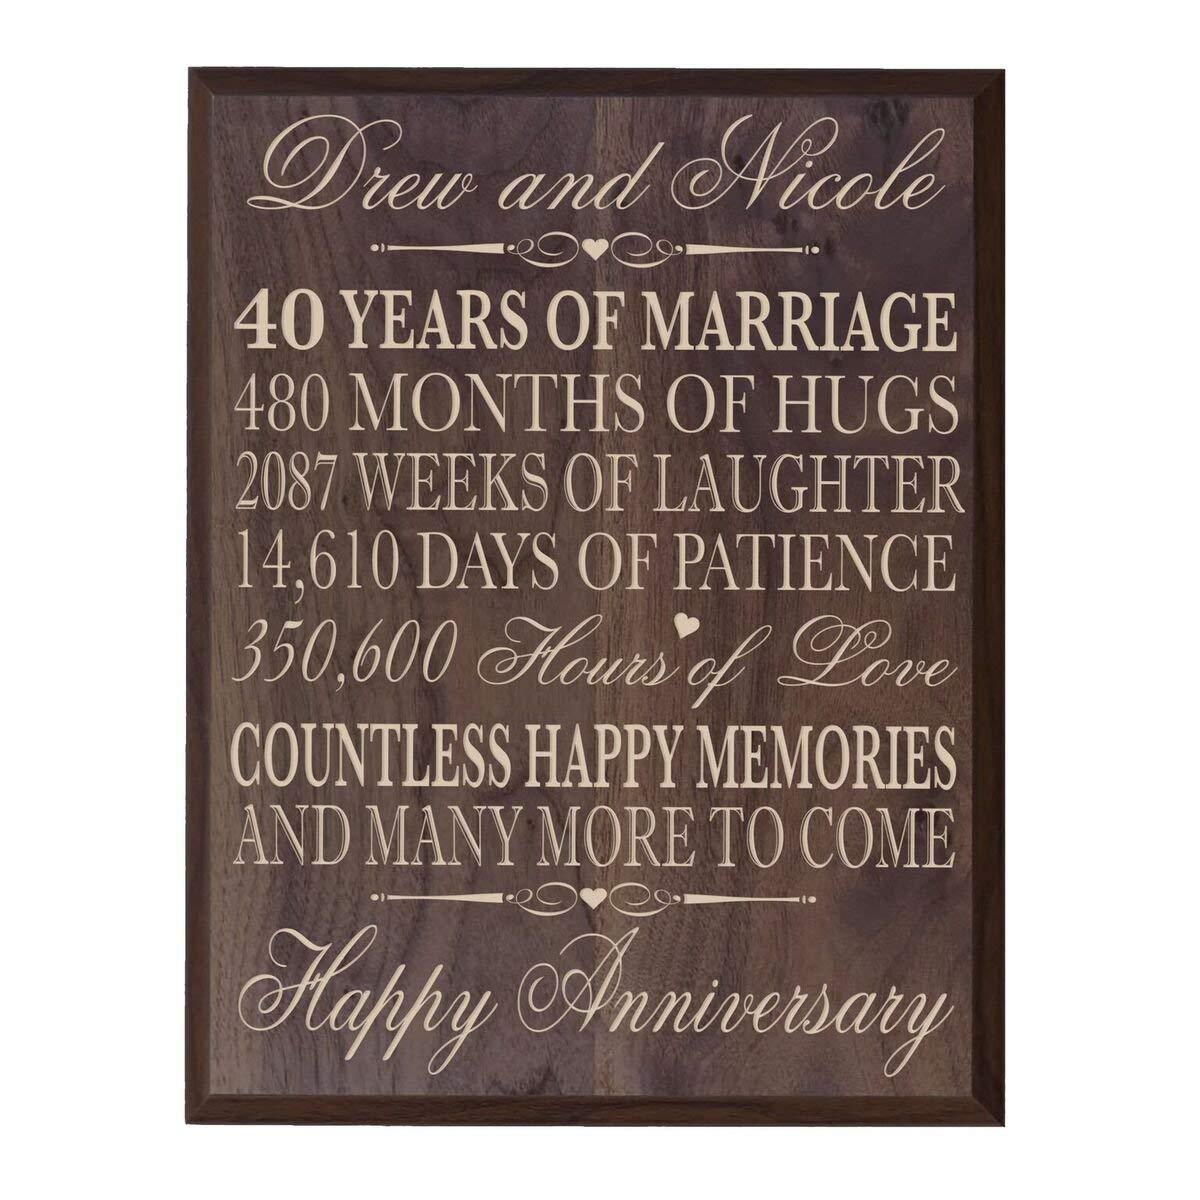 """Personalized 40th Wedding Anniversary Wall Plaque Gifts for Couple, Custom Made 40th Anniversary Gifts for Her,40th Wedding Anniversary 12"""" W X 15"""" H Wall Plaque By LifeSong Milestones (Grand Walnut)"""